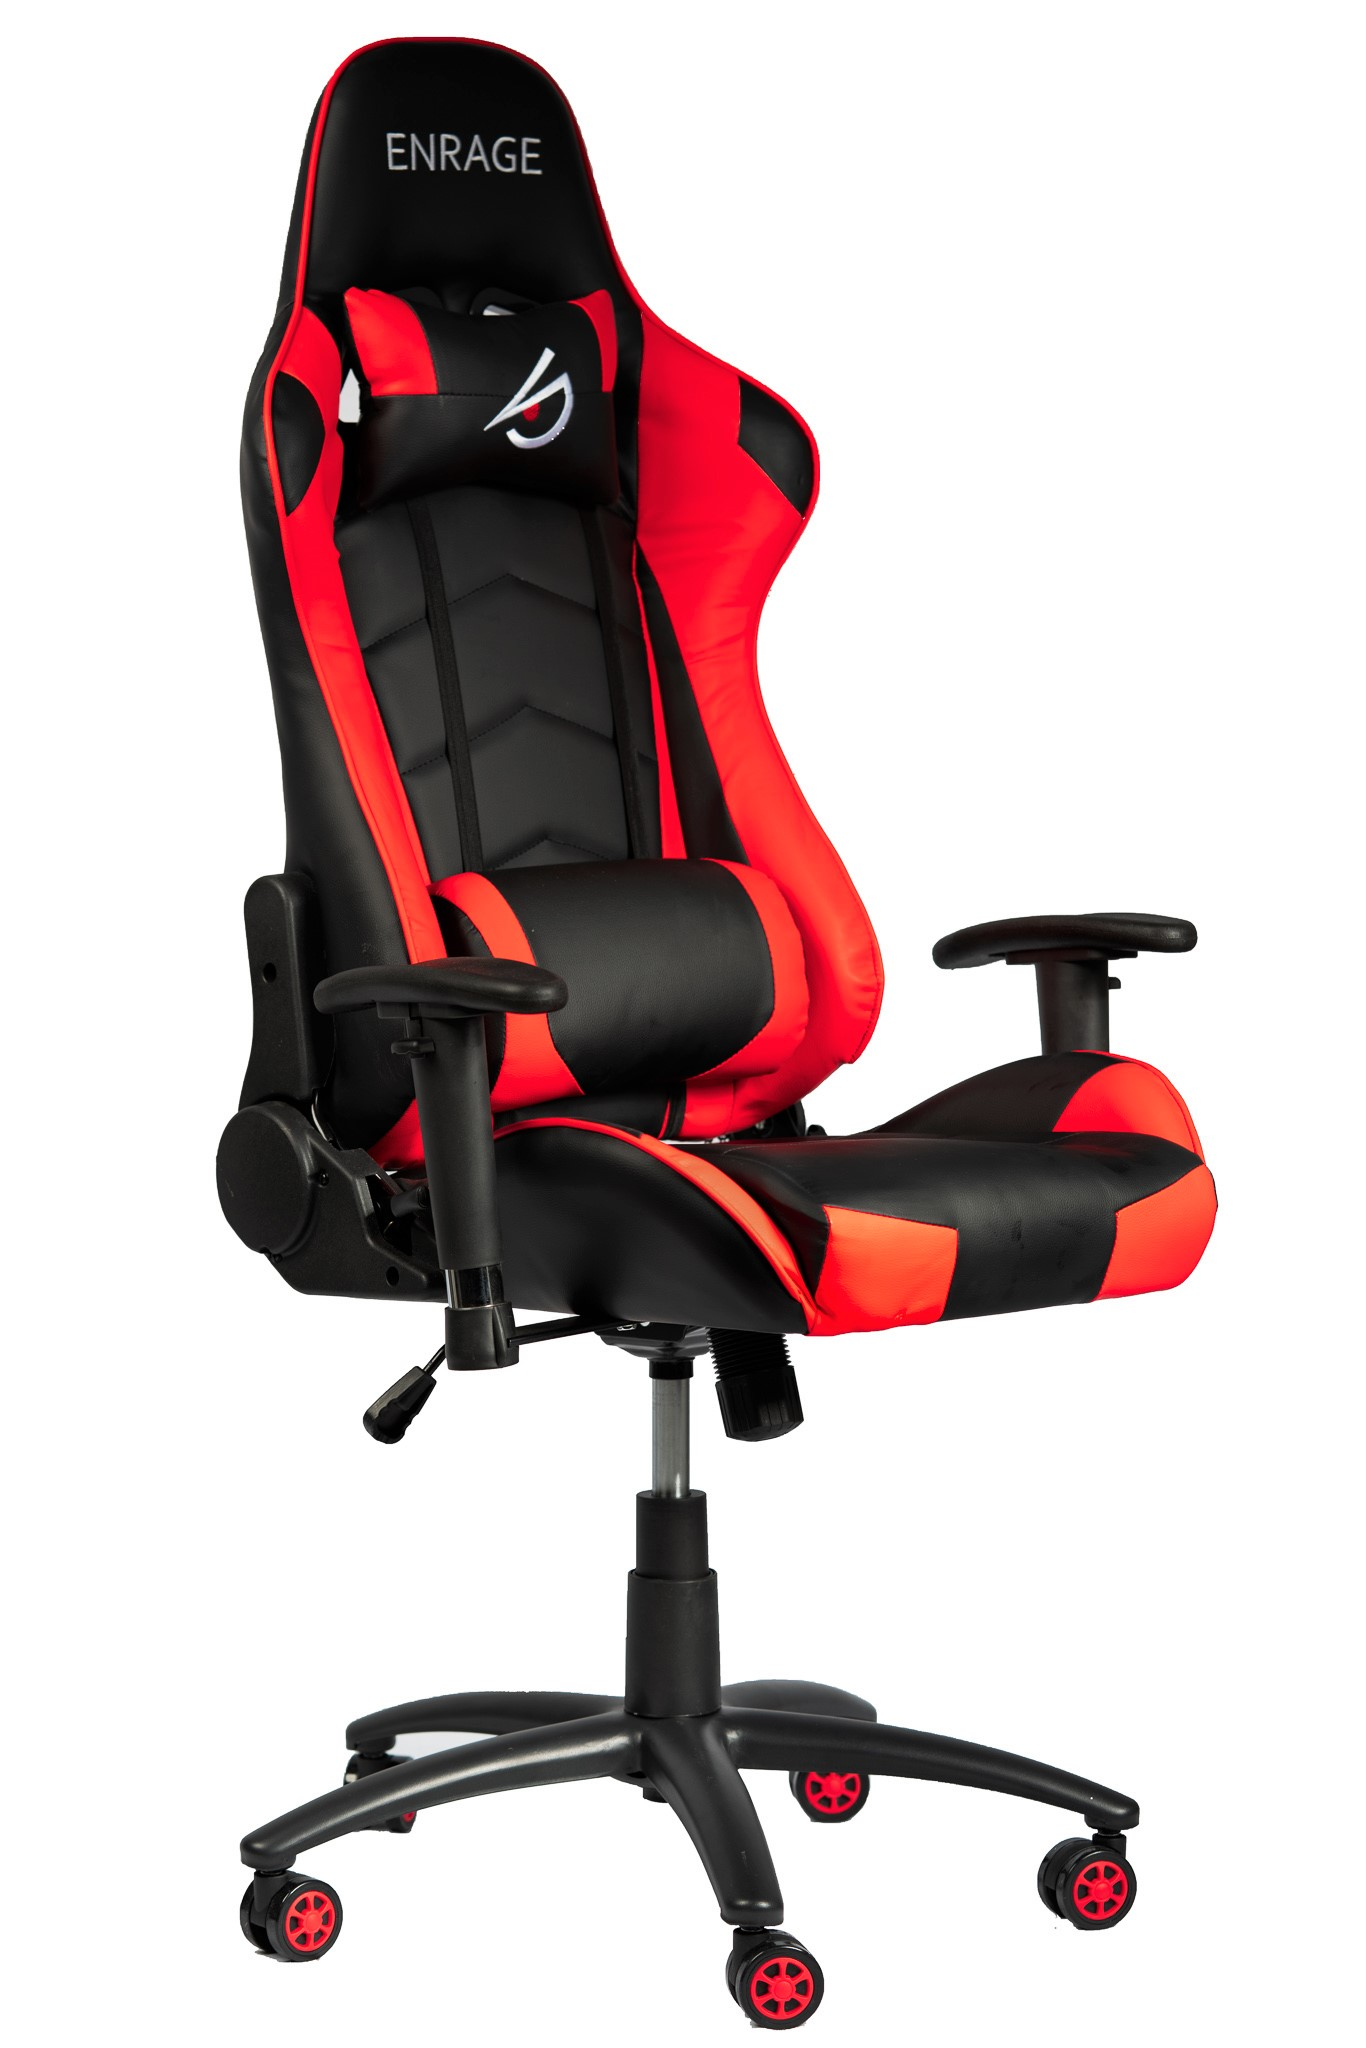 Terrific Enrage Ergonomic Chair Pu Leather Gaming Office Work Desk Black Red Ncnpc Chair Design For Home Ncnpcorg